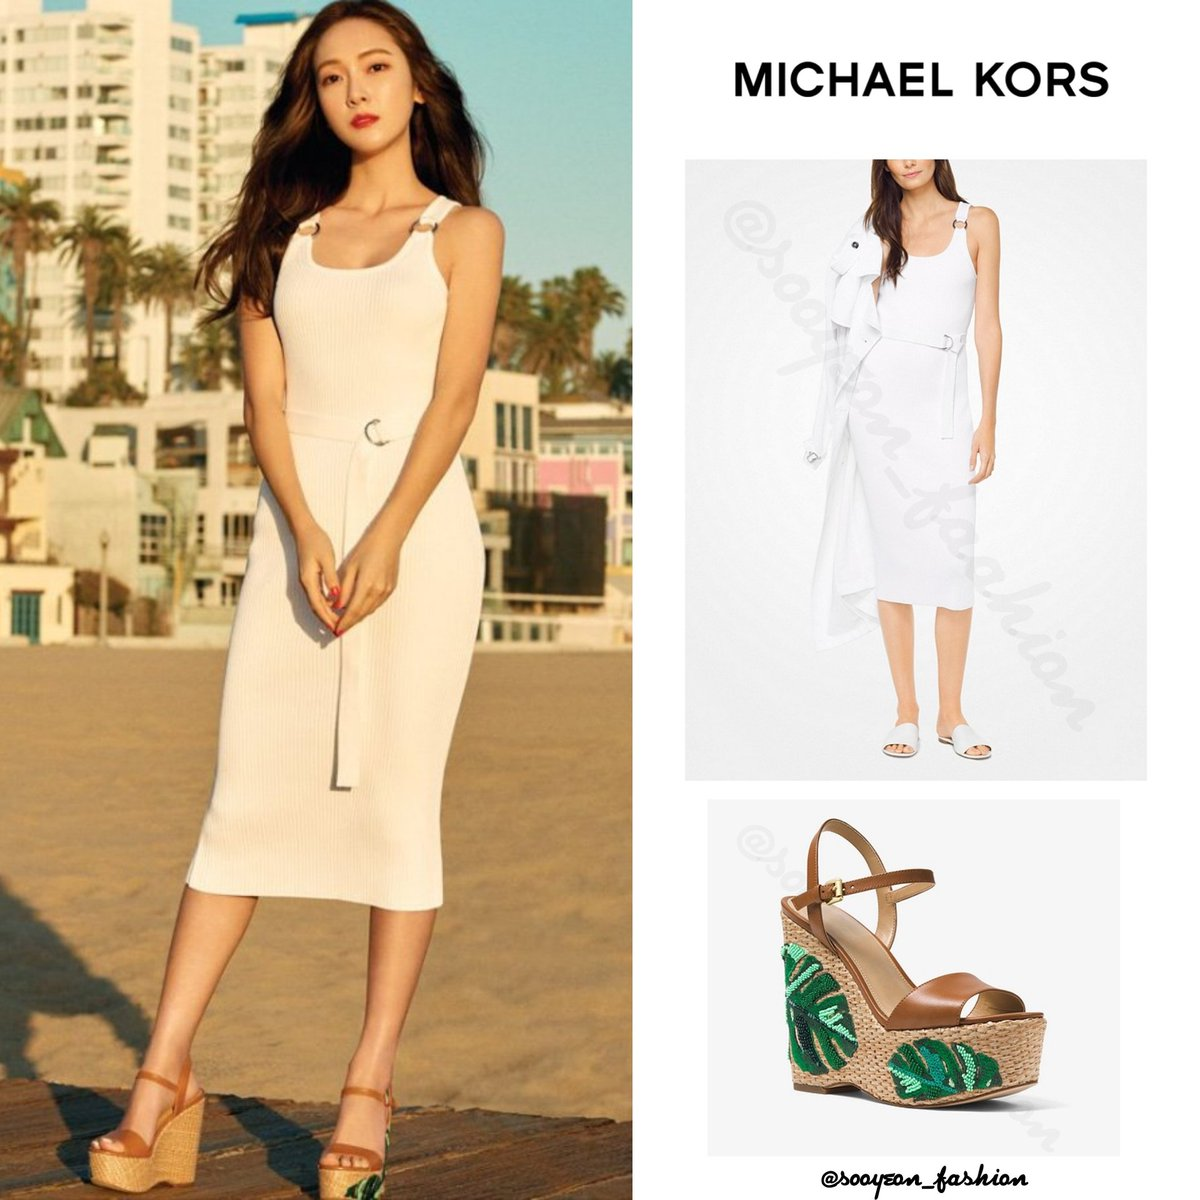 4392a29f4 Fisher Palm Embroidered Wedge, $116,25 https://www.michaelkors.com/fisher- palm-embroidered-wedge/_/R-US_40S8FIMS1L …pic.twitter.com/jahdoynCyR